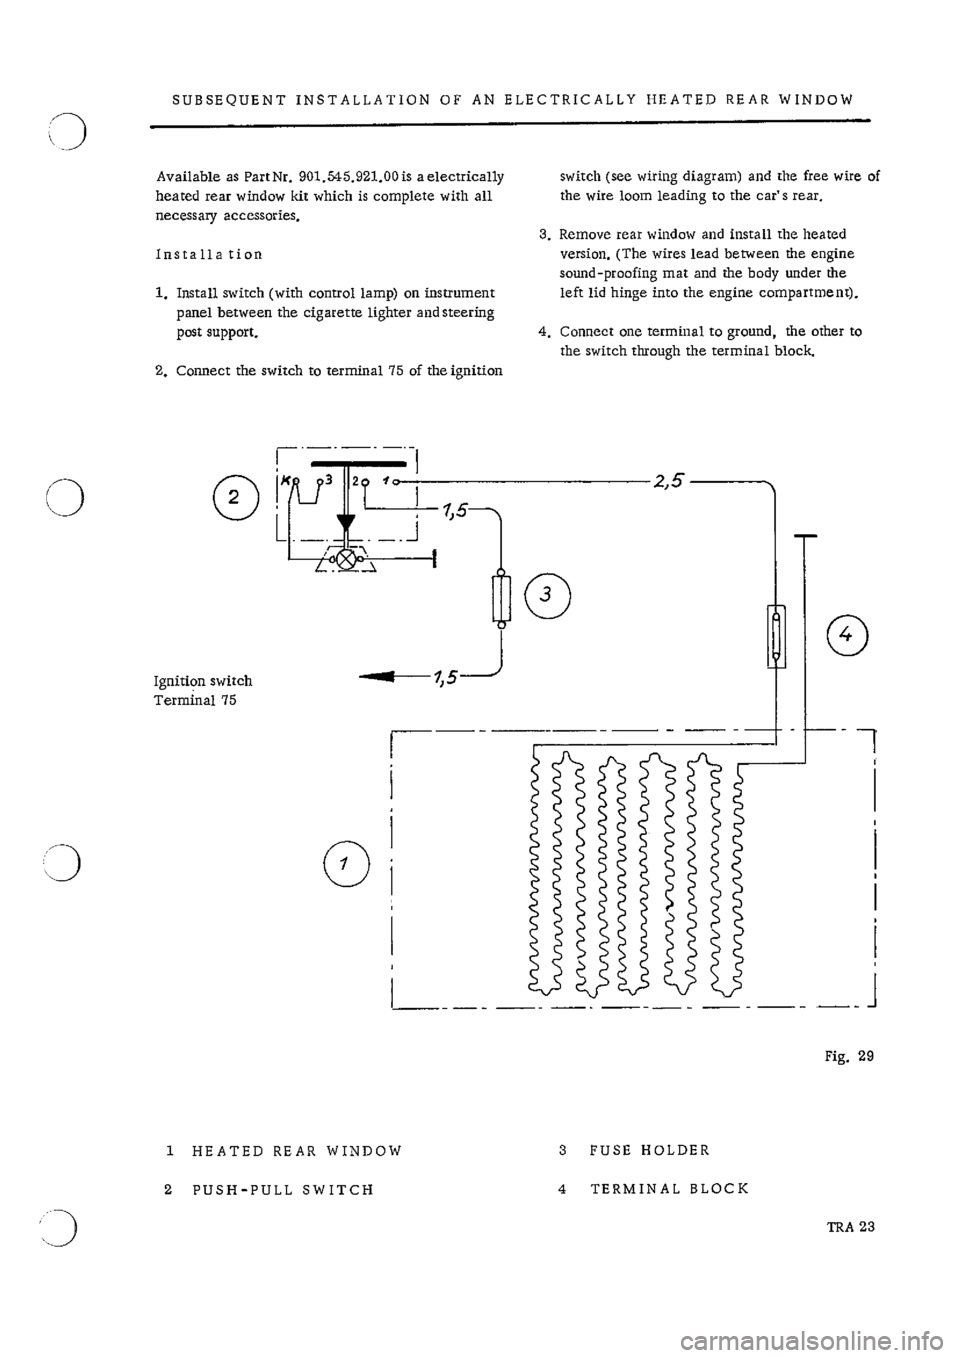 PORSCHE 911 1966 1.G Technical Instruction Workshop Manual on troubleshooting diagrams, honda motorcycle repair diagrams, sincgars radio configurations diagrams, transformer diagrams, snatch block diagrams, motor diagrams, lighting diagrams, smart car diagrams, pinout diagrams, electronic circuit diagrams, internet of things diagrams, friendship bracelet diagrams, electrical diagrams, switch diagrams, gmc fuse box diagrams, led circuit diagrams, battery diagrams, hvac diagrams, engine diagrams, series and parallel circuits diagrams,